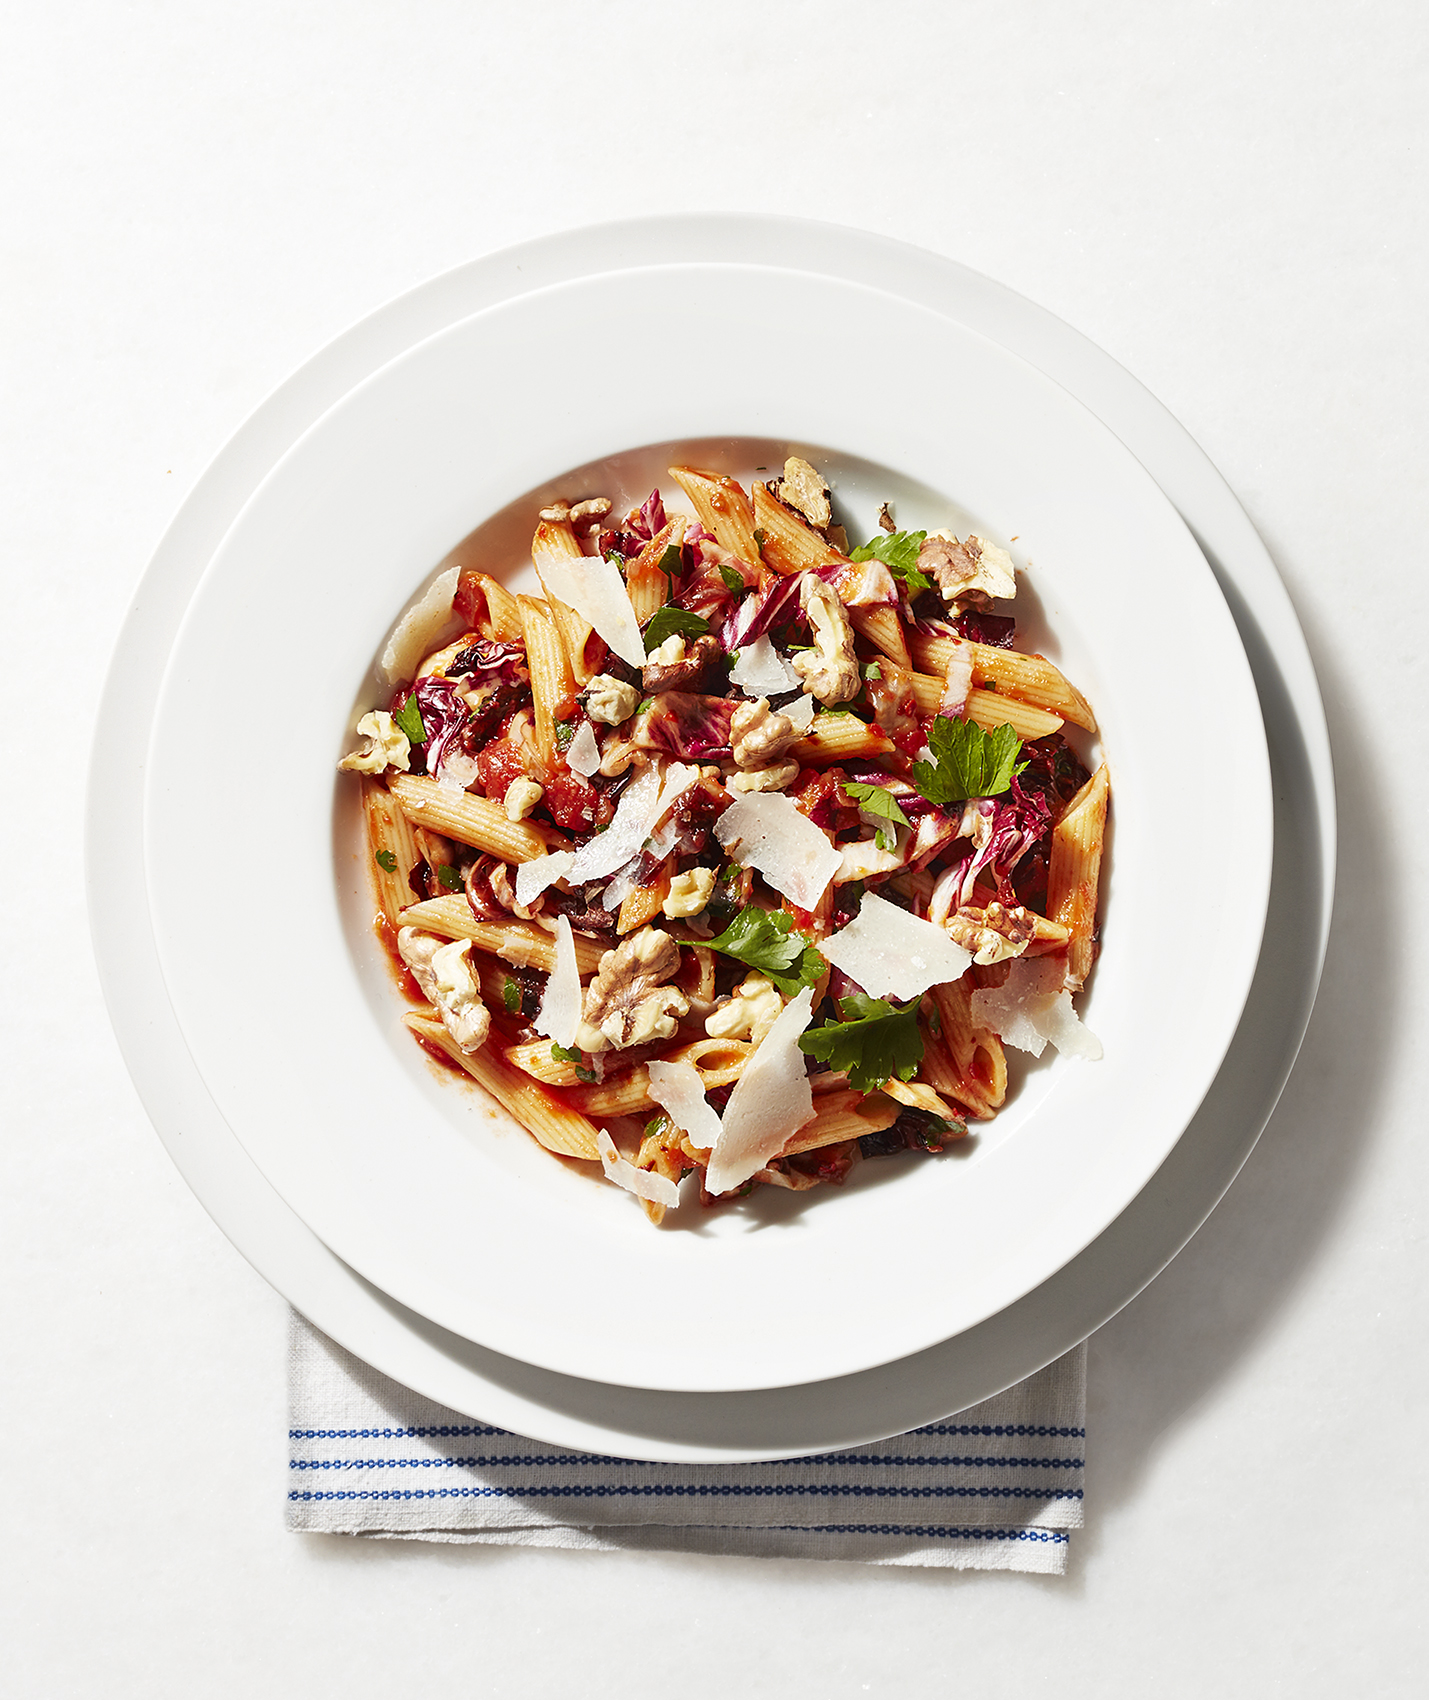 Penne With Red Sauce, 